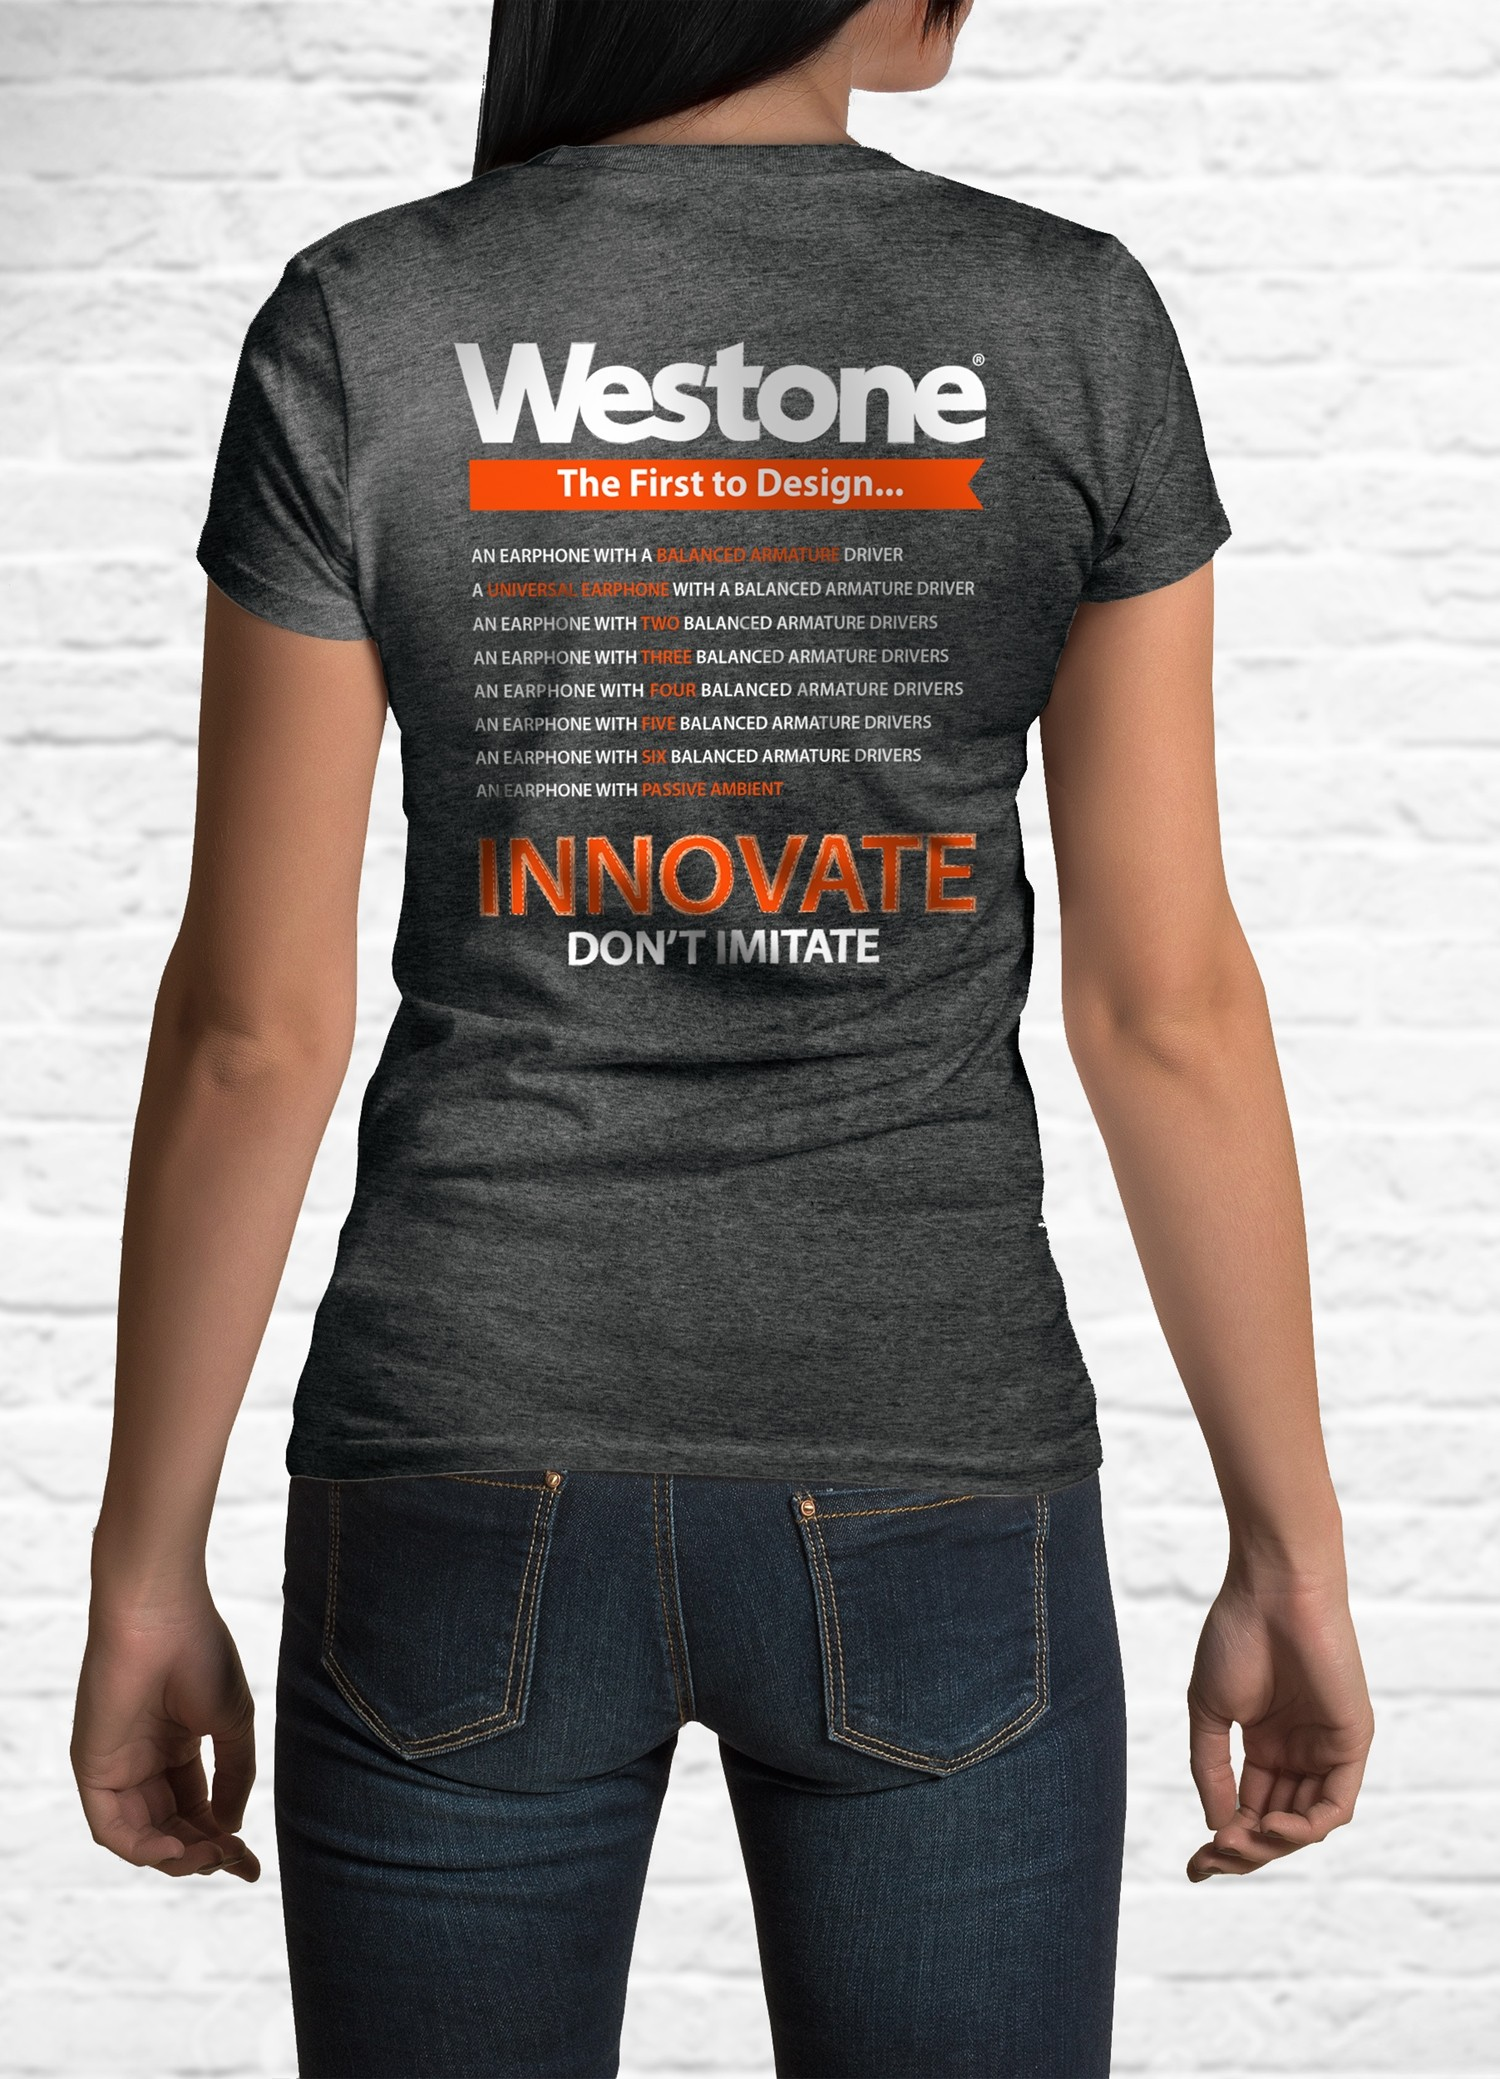 Westone Since 1959 T-Shirt Back